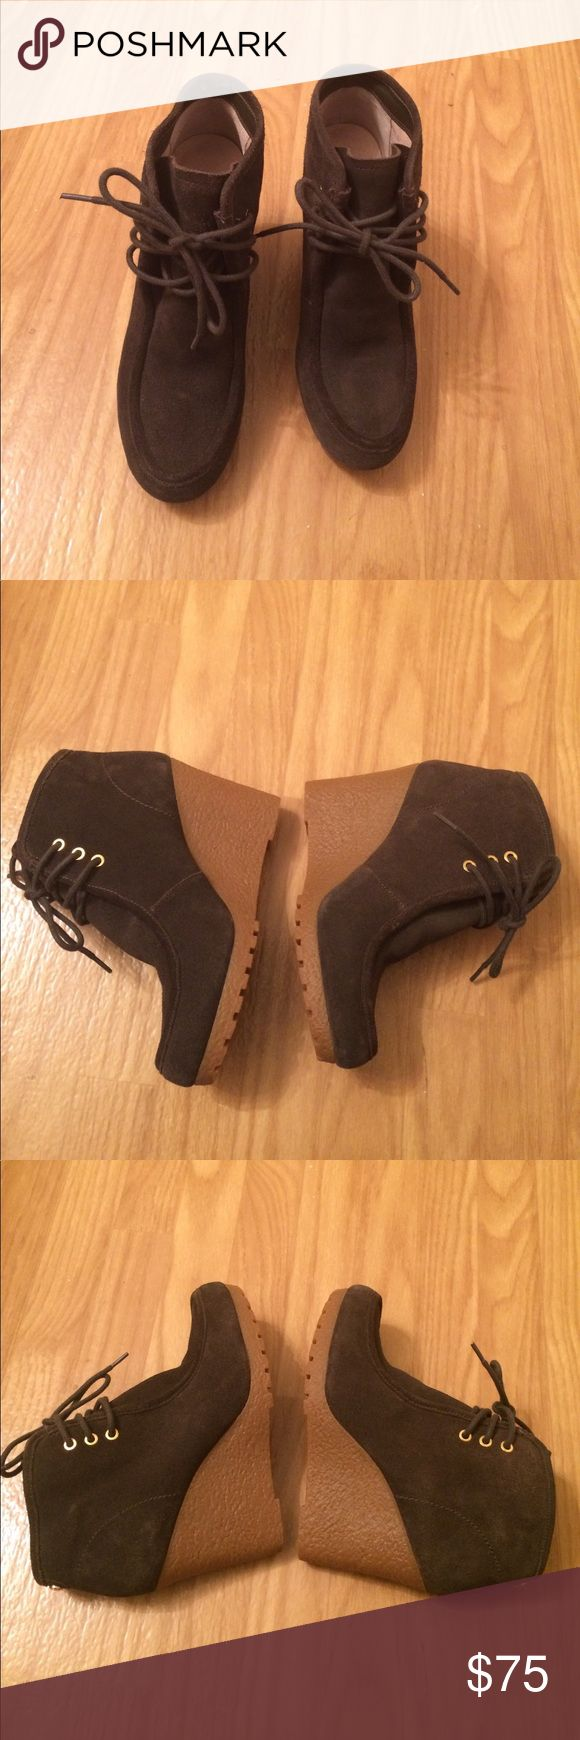 ⚡SALE⚡Michael Kors olive green wedge booties Michael Kors booties • olive green • wedge heel • leather (suede) • rugged soles • Sz 7.5 • like-new, 10/10 excellent condition • fast same/next day shipping Michael Kors Shoes Ankle Boots & Booties